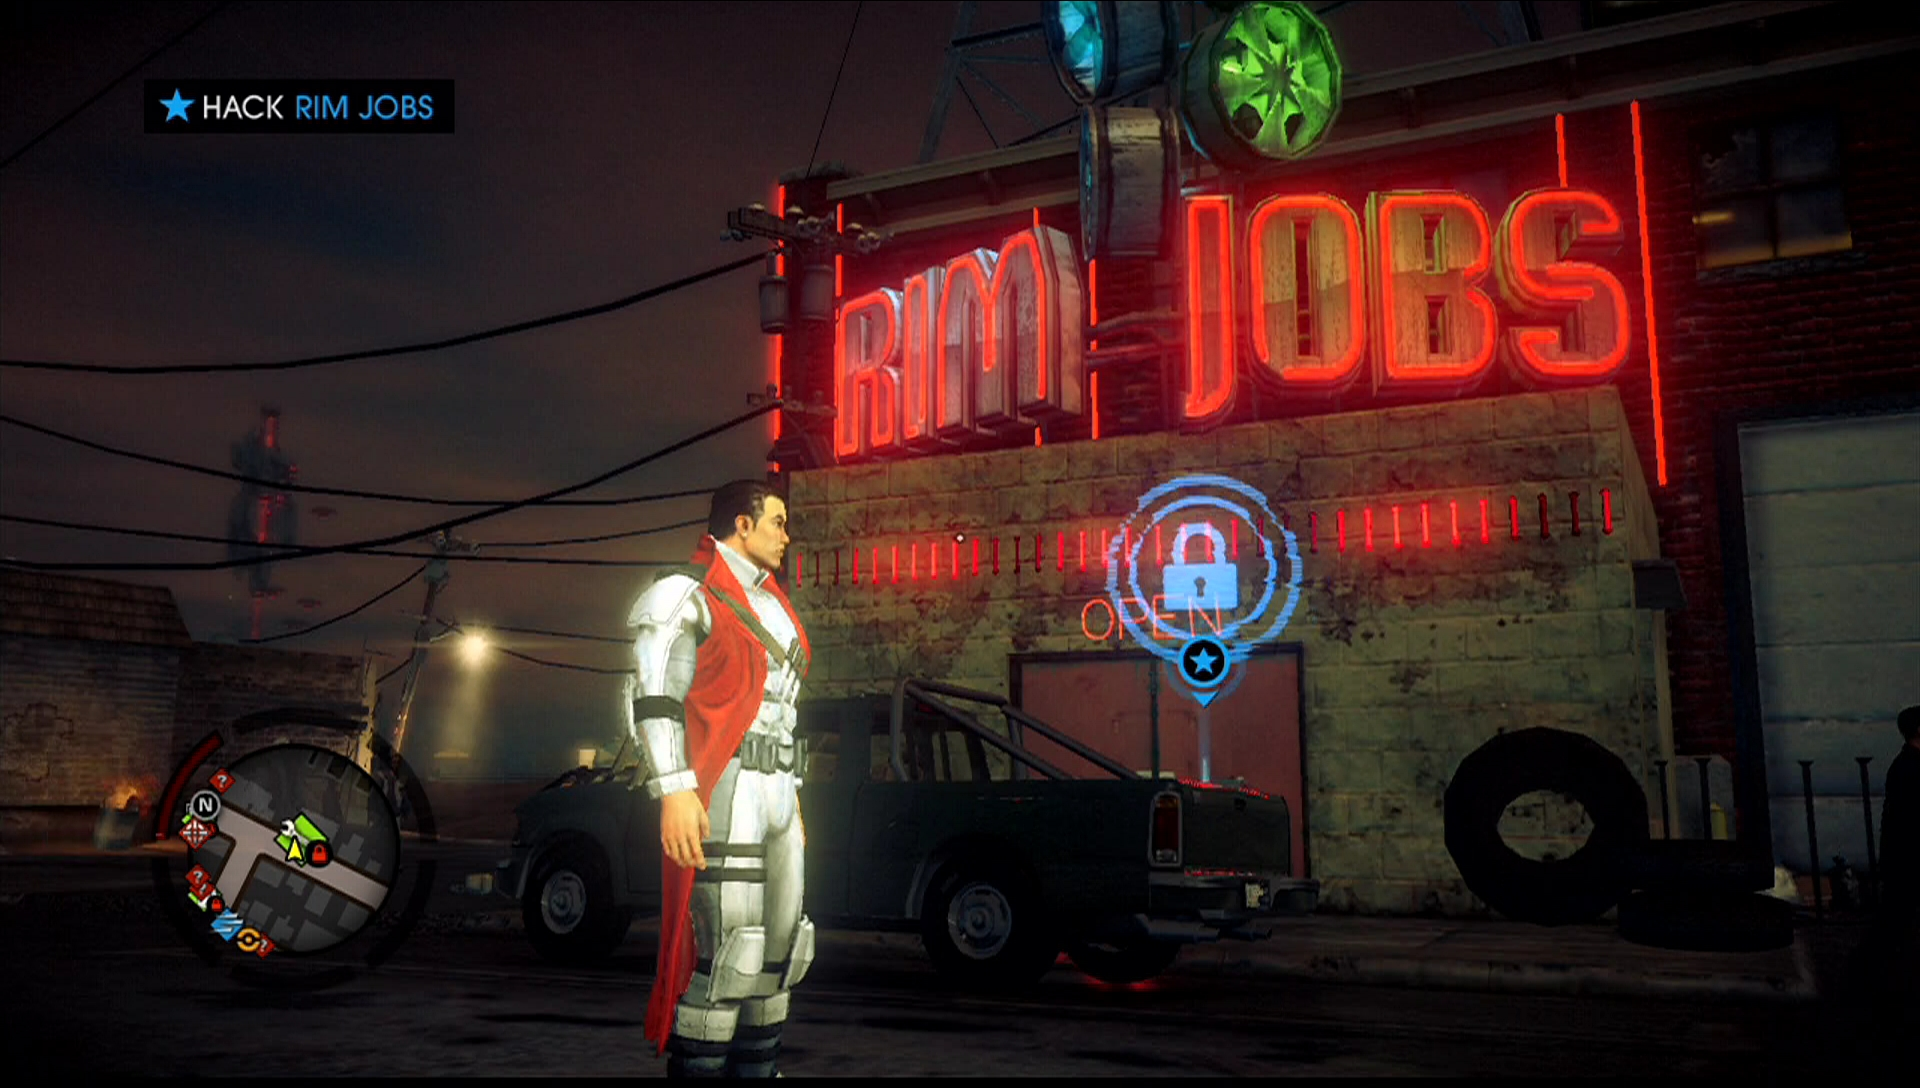 http://cdn.cheatcc.com/guide_screens/saints_row_4/SQ_WhiteLight1A.jpg